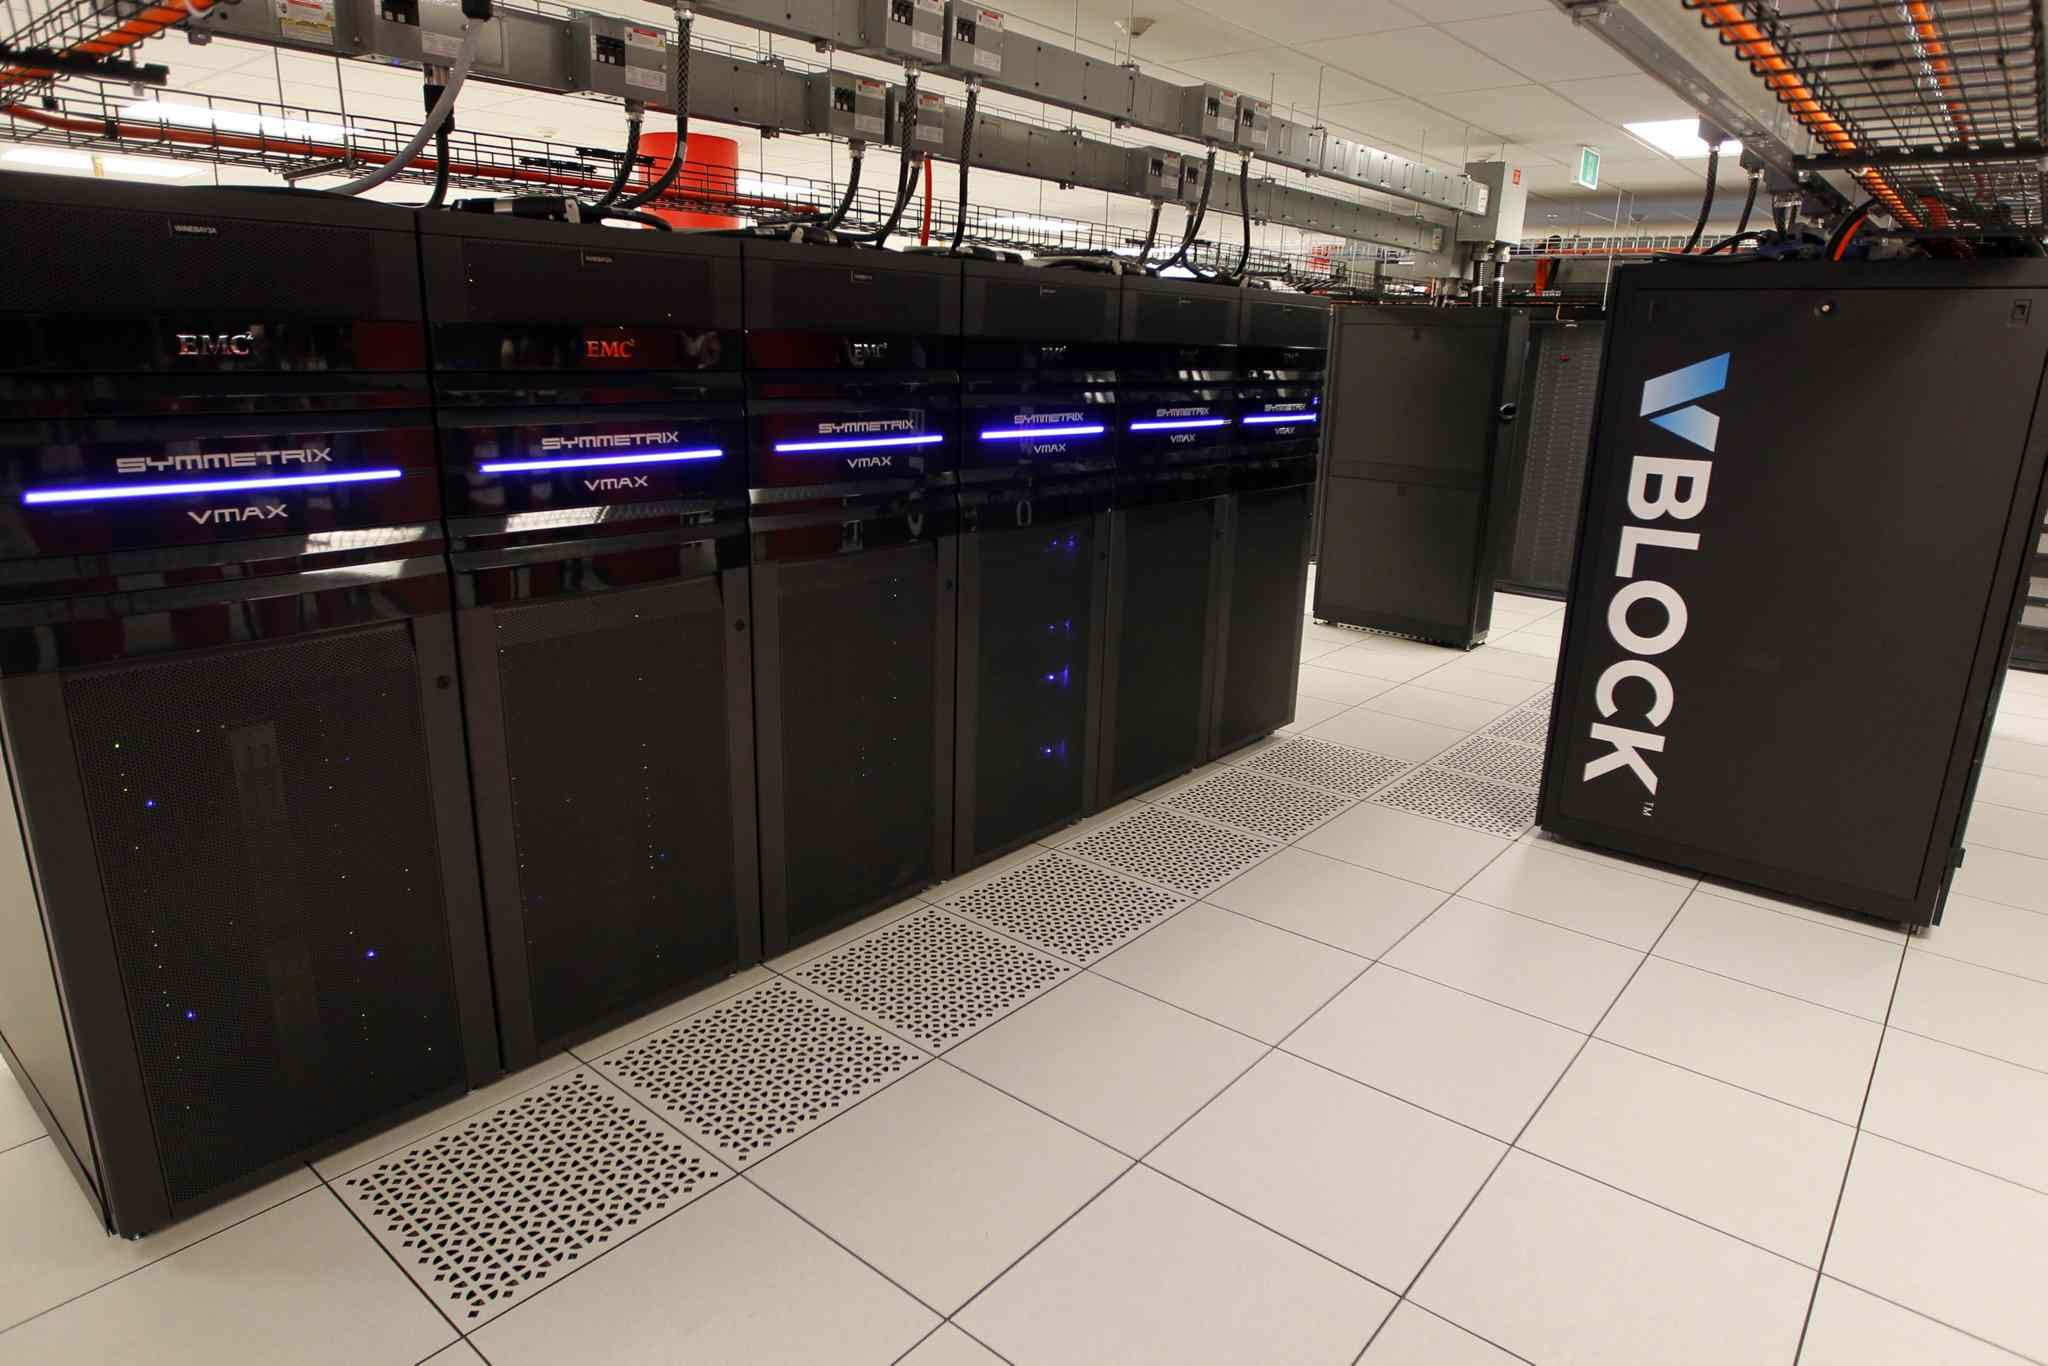 The new Canadian Tire Cloud Computing Centre in Winnipeg, Manitoba will be one of the most advanced centres of its kind in North America.